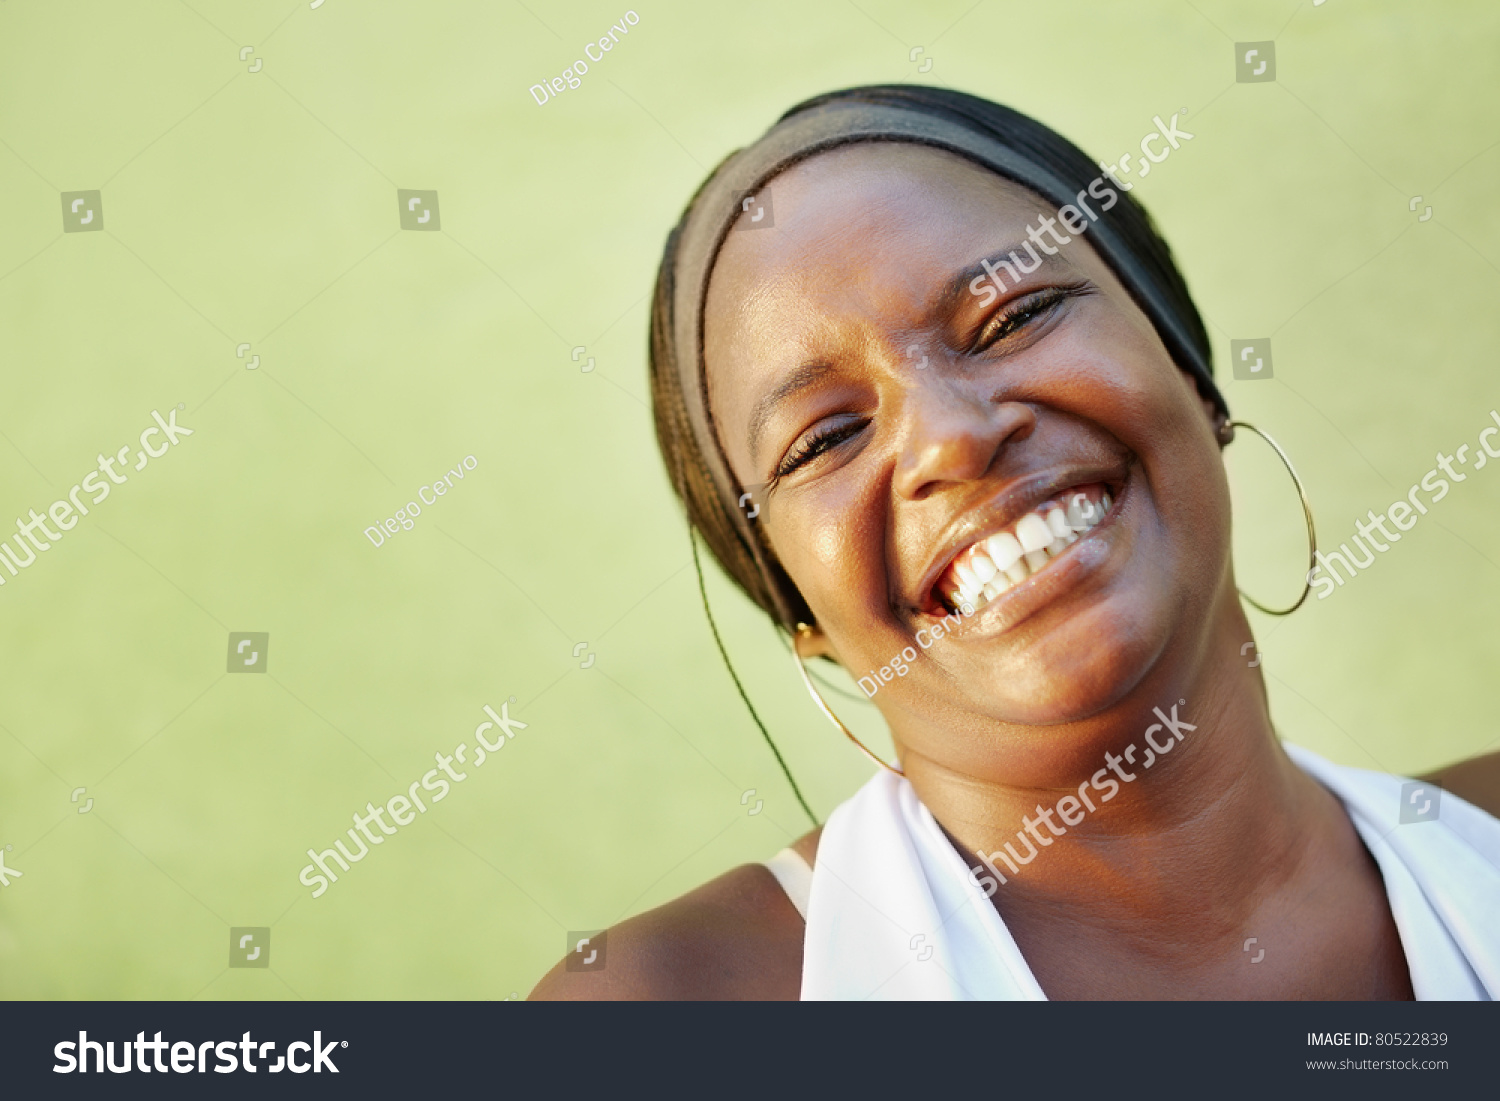 portrait of happy african adult woman looking at camera and smiling. Horizontal shape, copy space #80522839